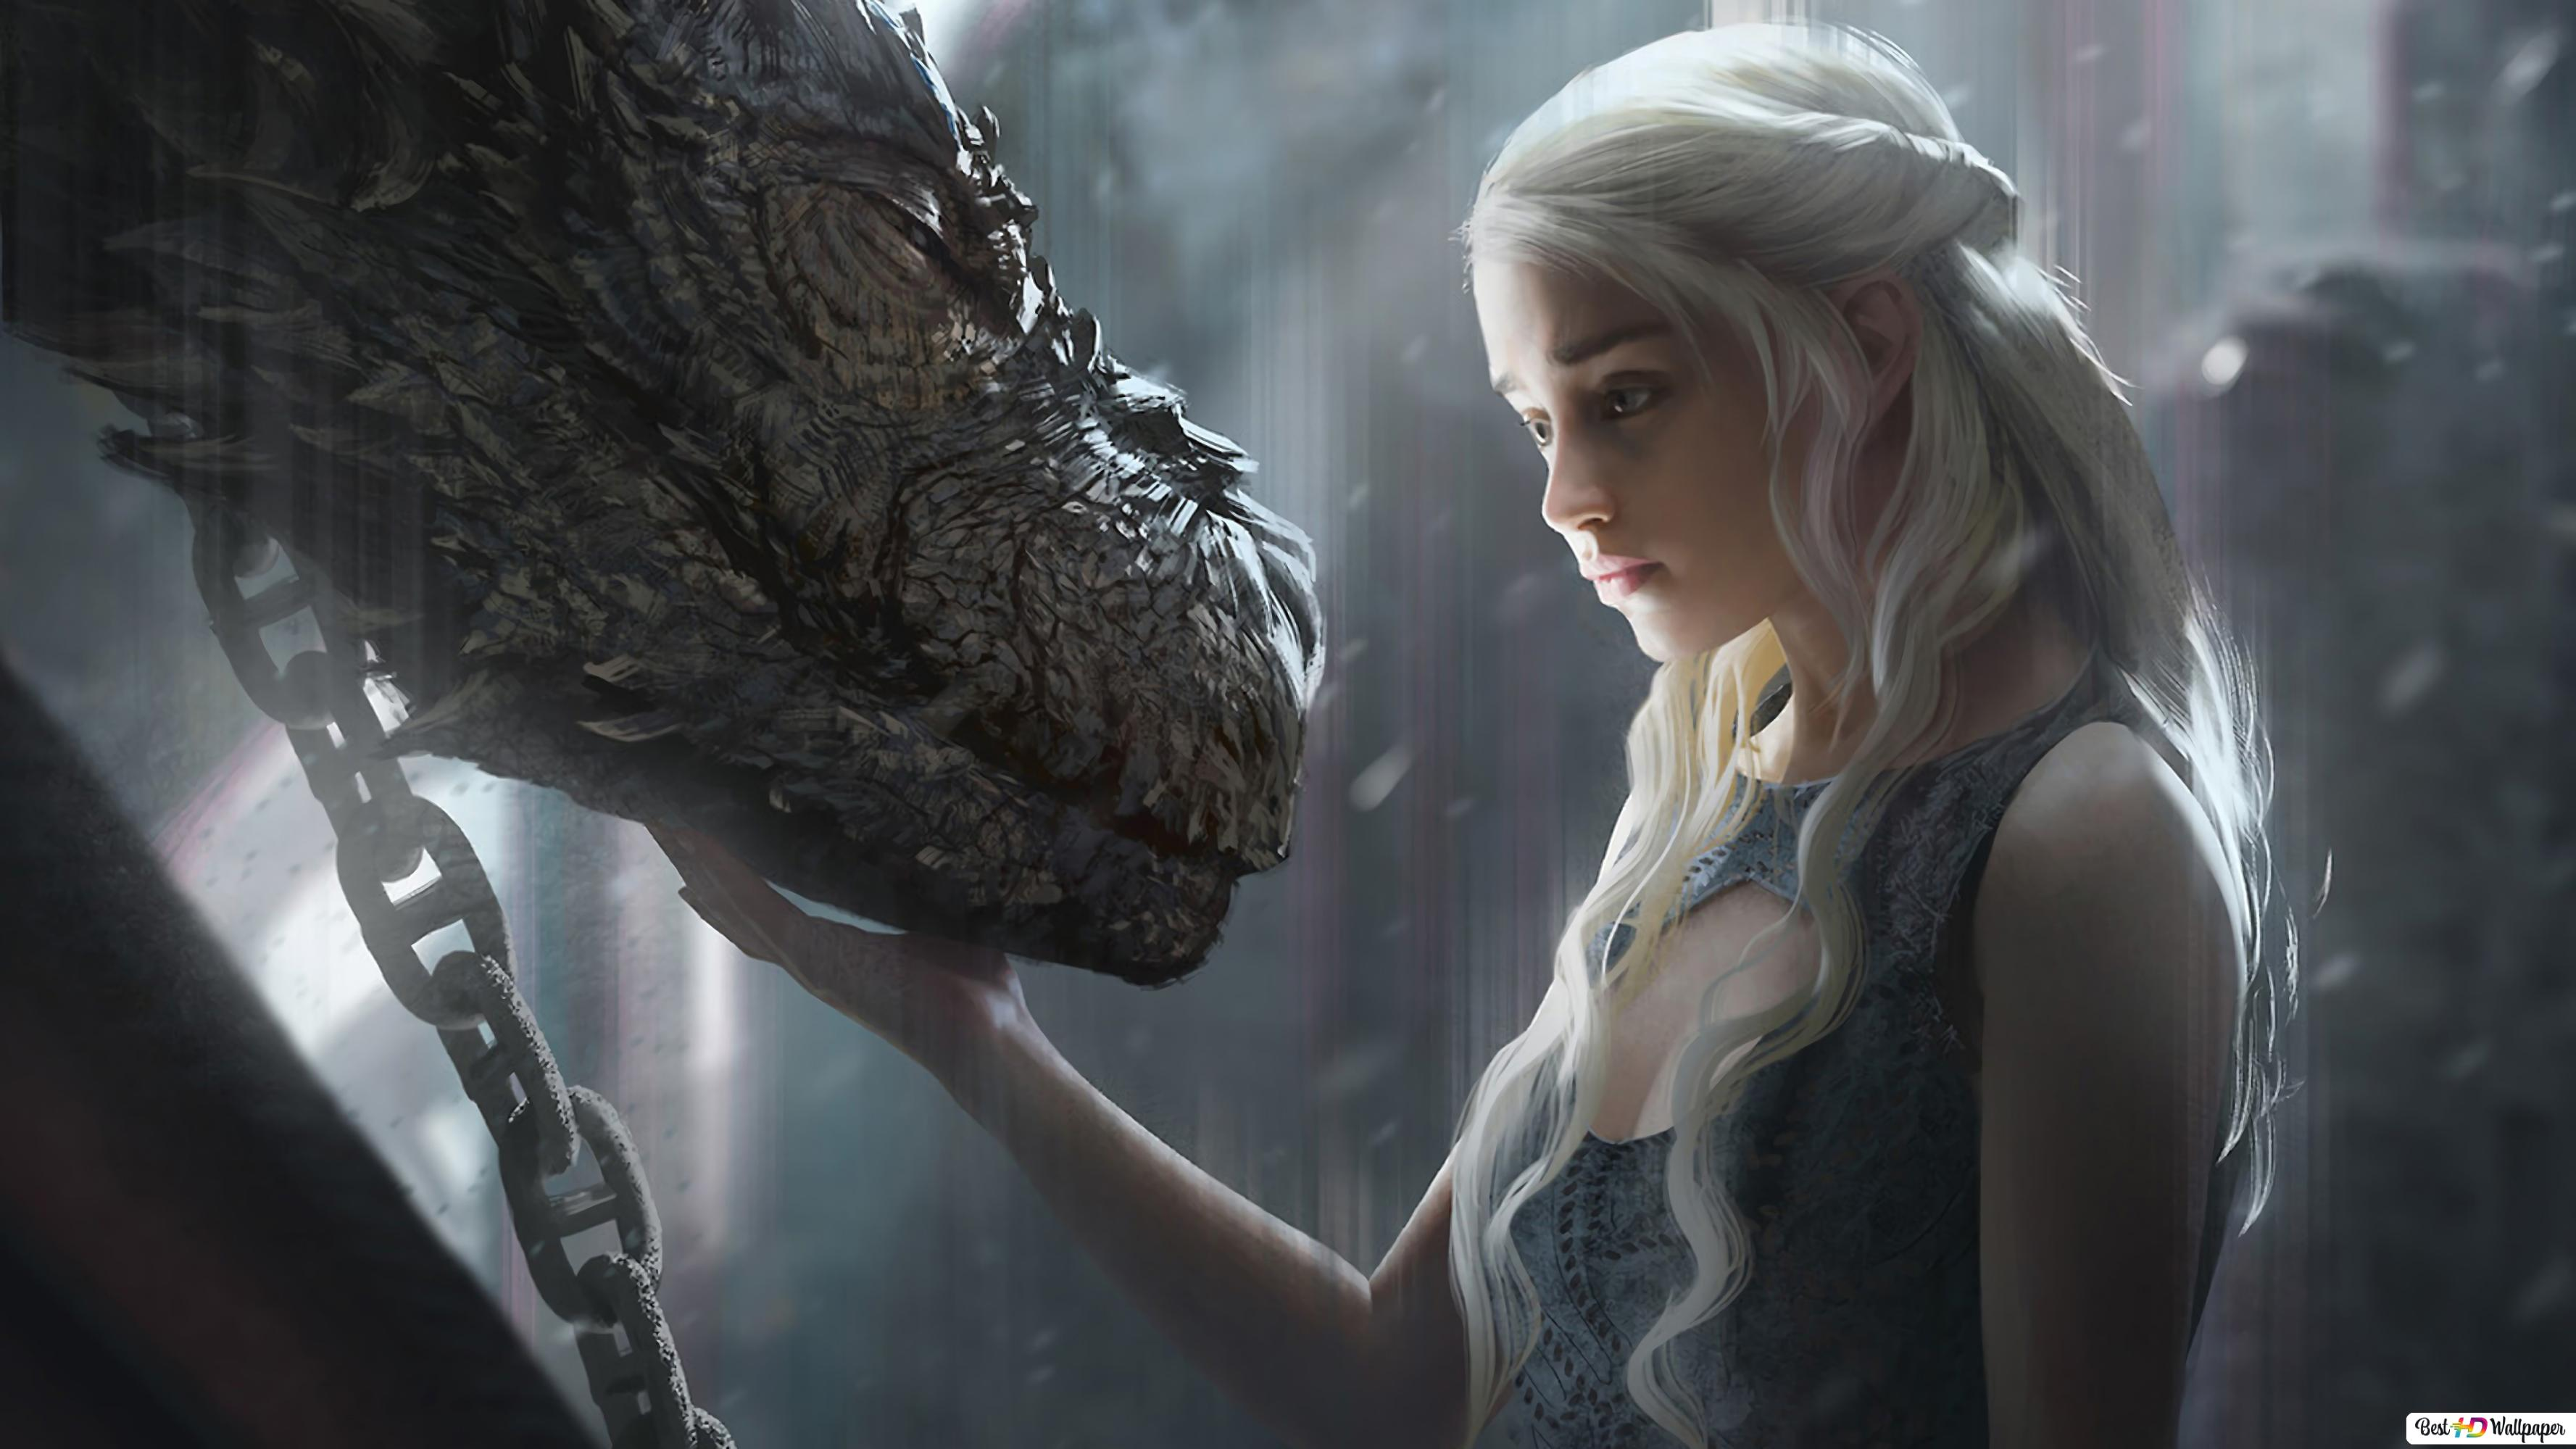 Game Of Thrones Daenerys Targaryen Dragon Hd Wallpaper Download